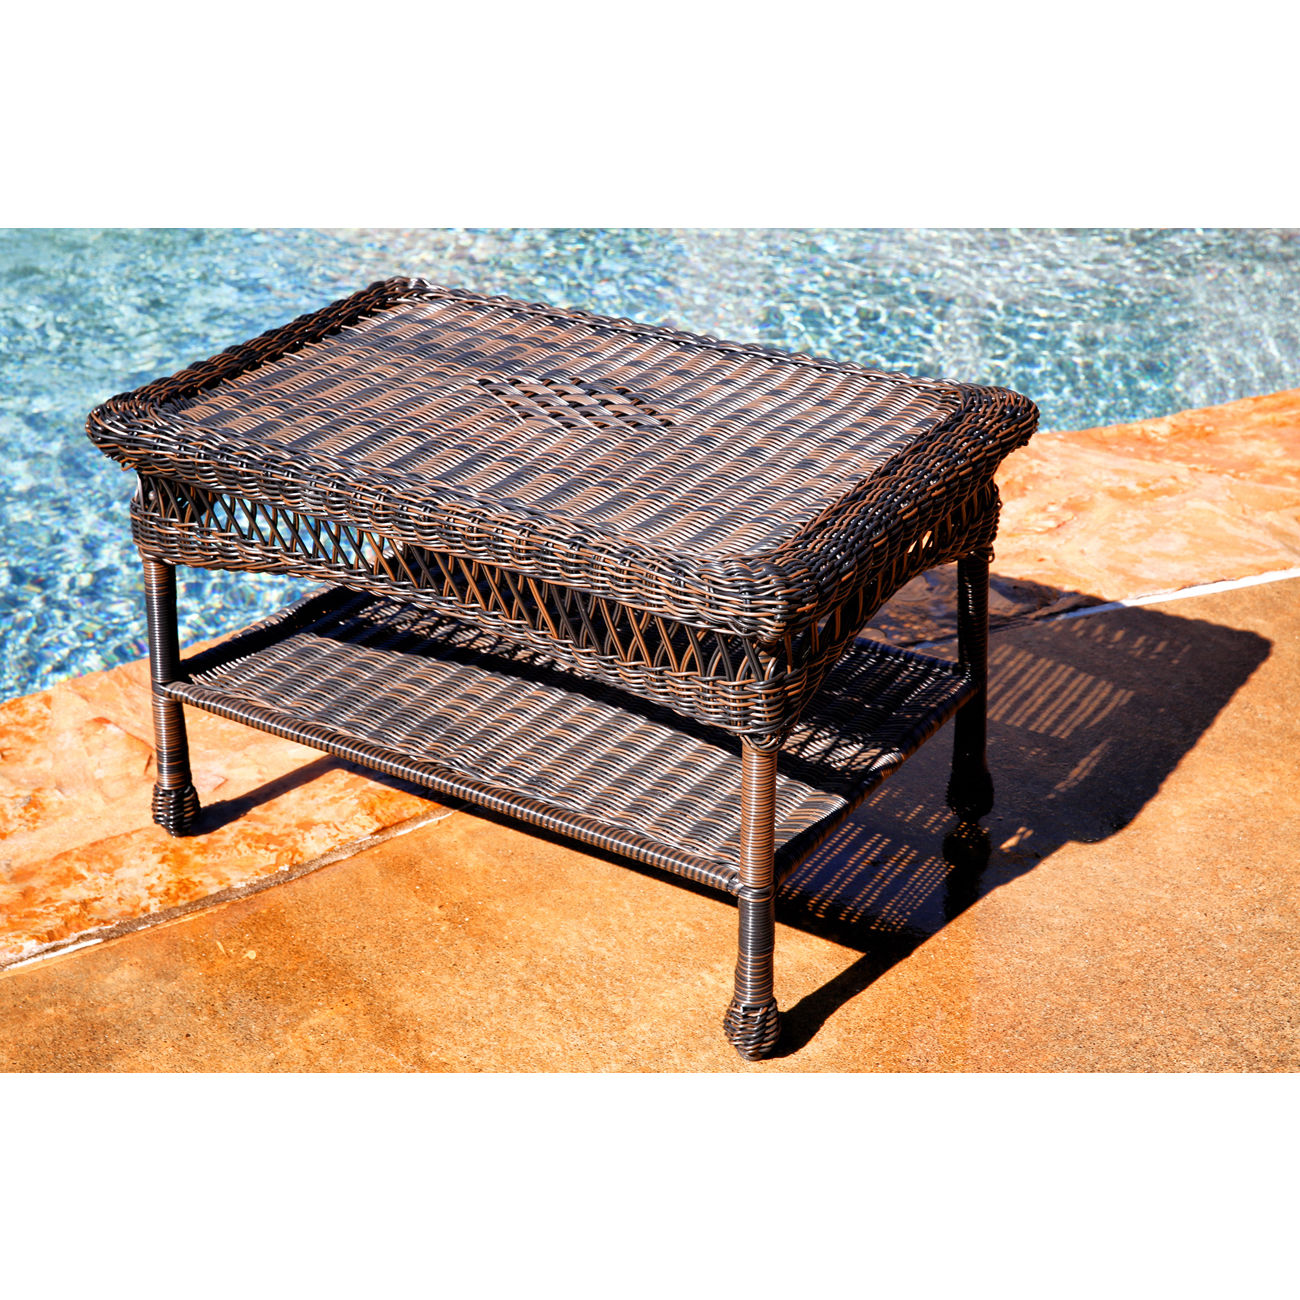 #214 - Outdoor & Indoor Stylish Hand Woven Resin Wicker Coffee Table in White